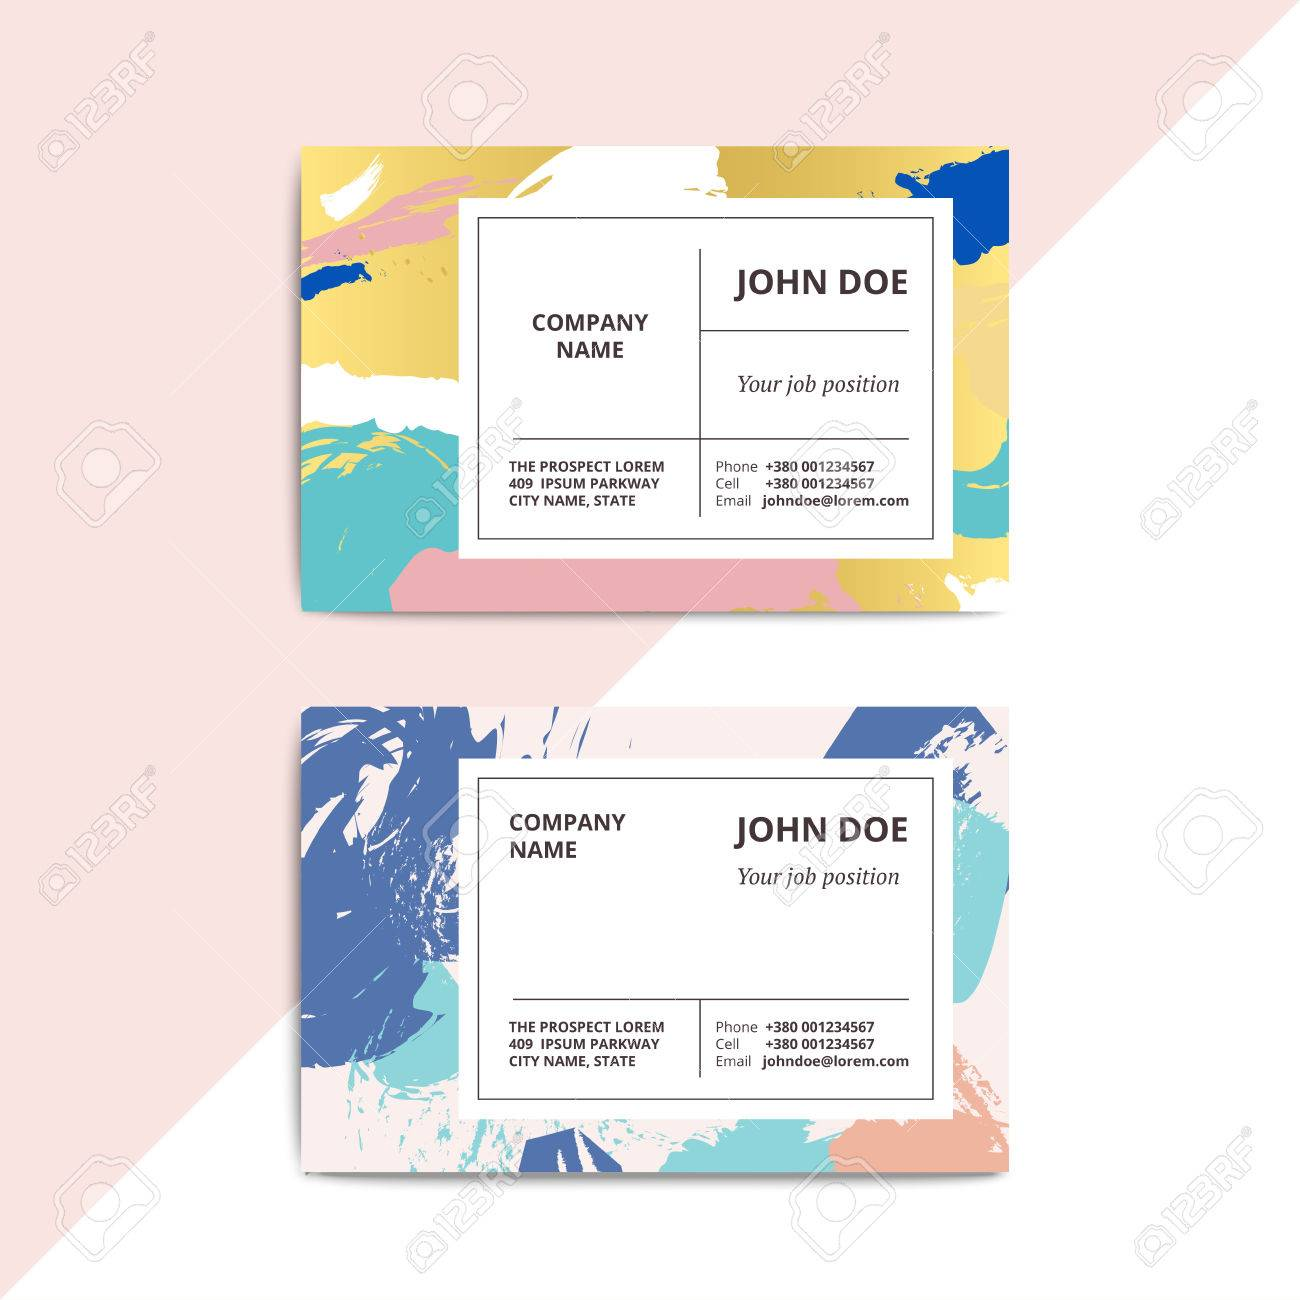 Trendy Abstract Business Card Templates Modern Luxury Beauty Salon Or Cosmetic Shop Layout With Artistic